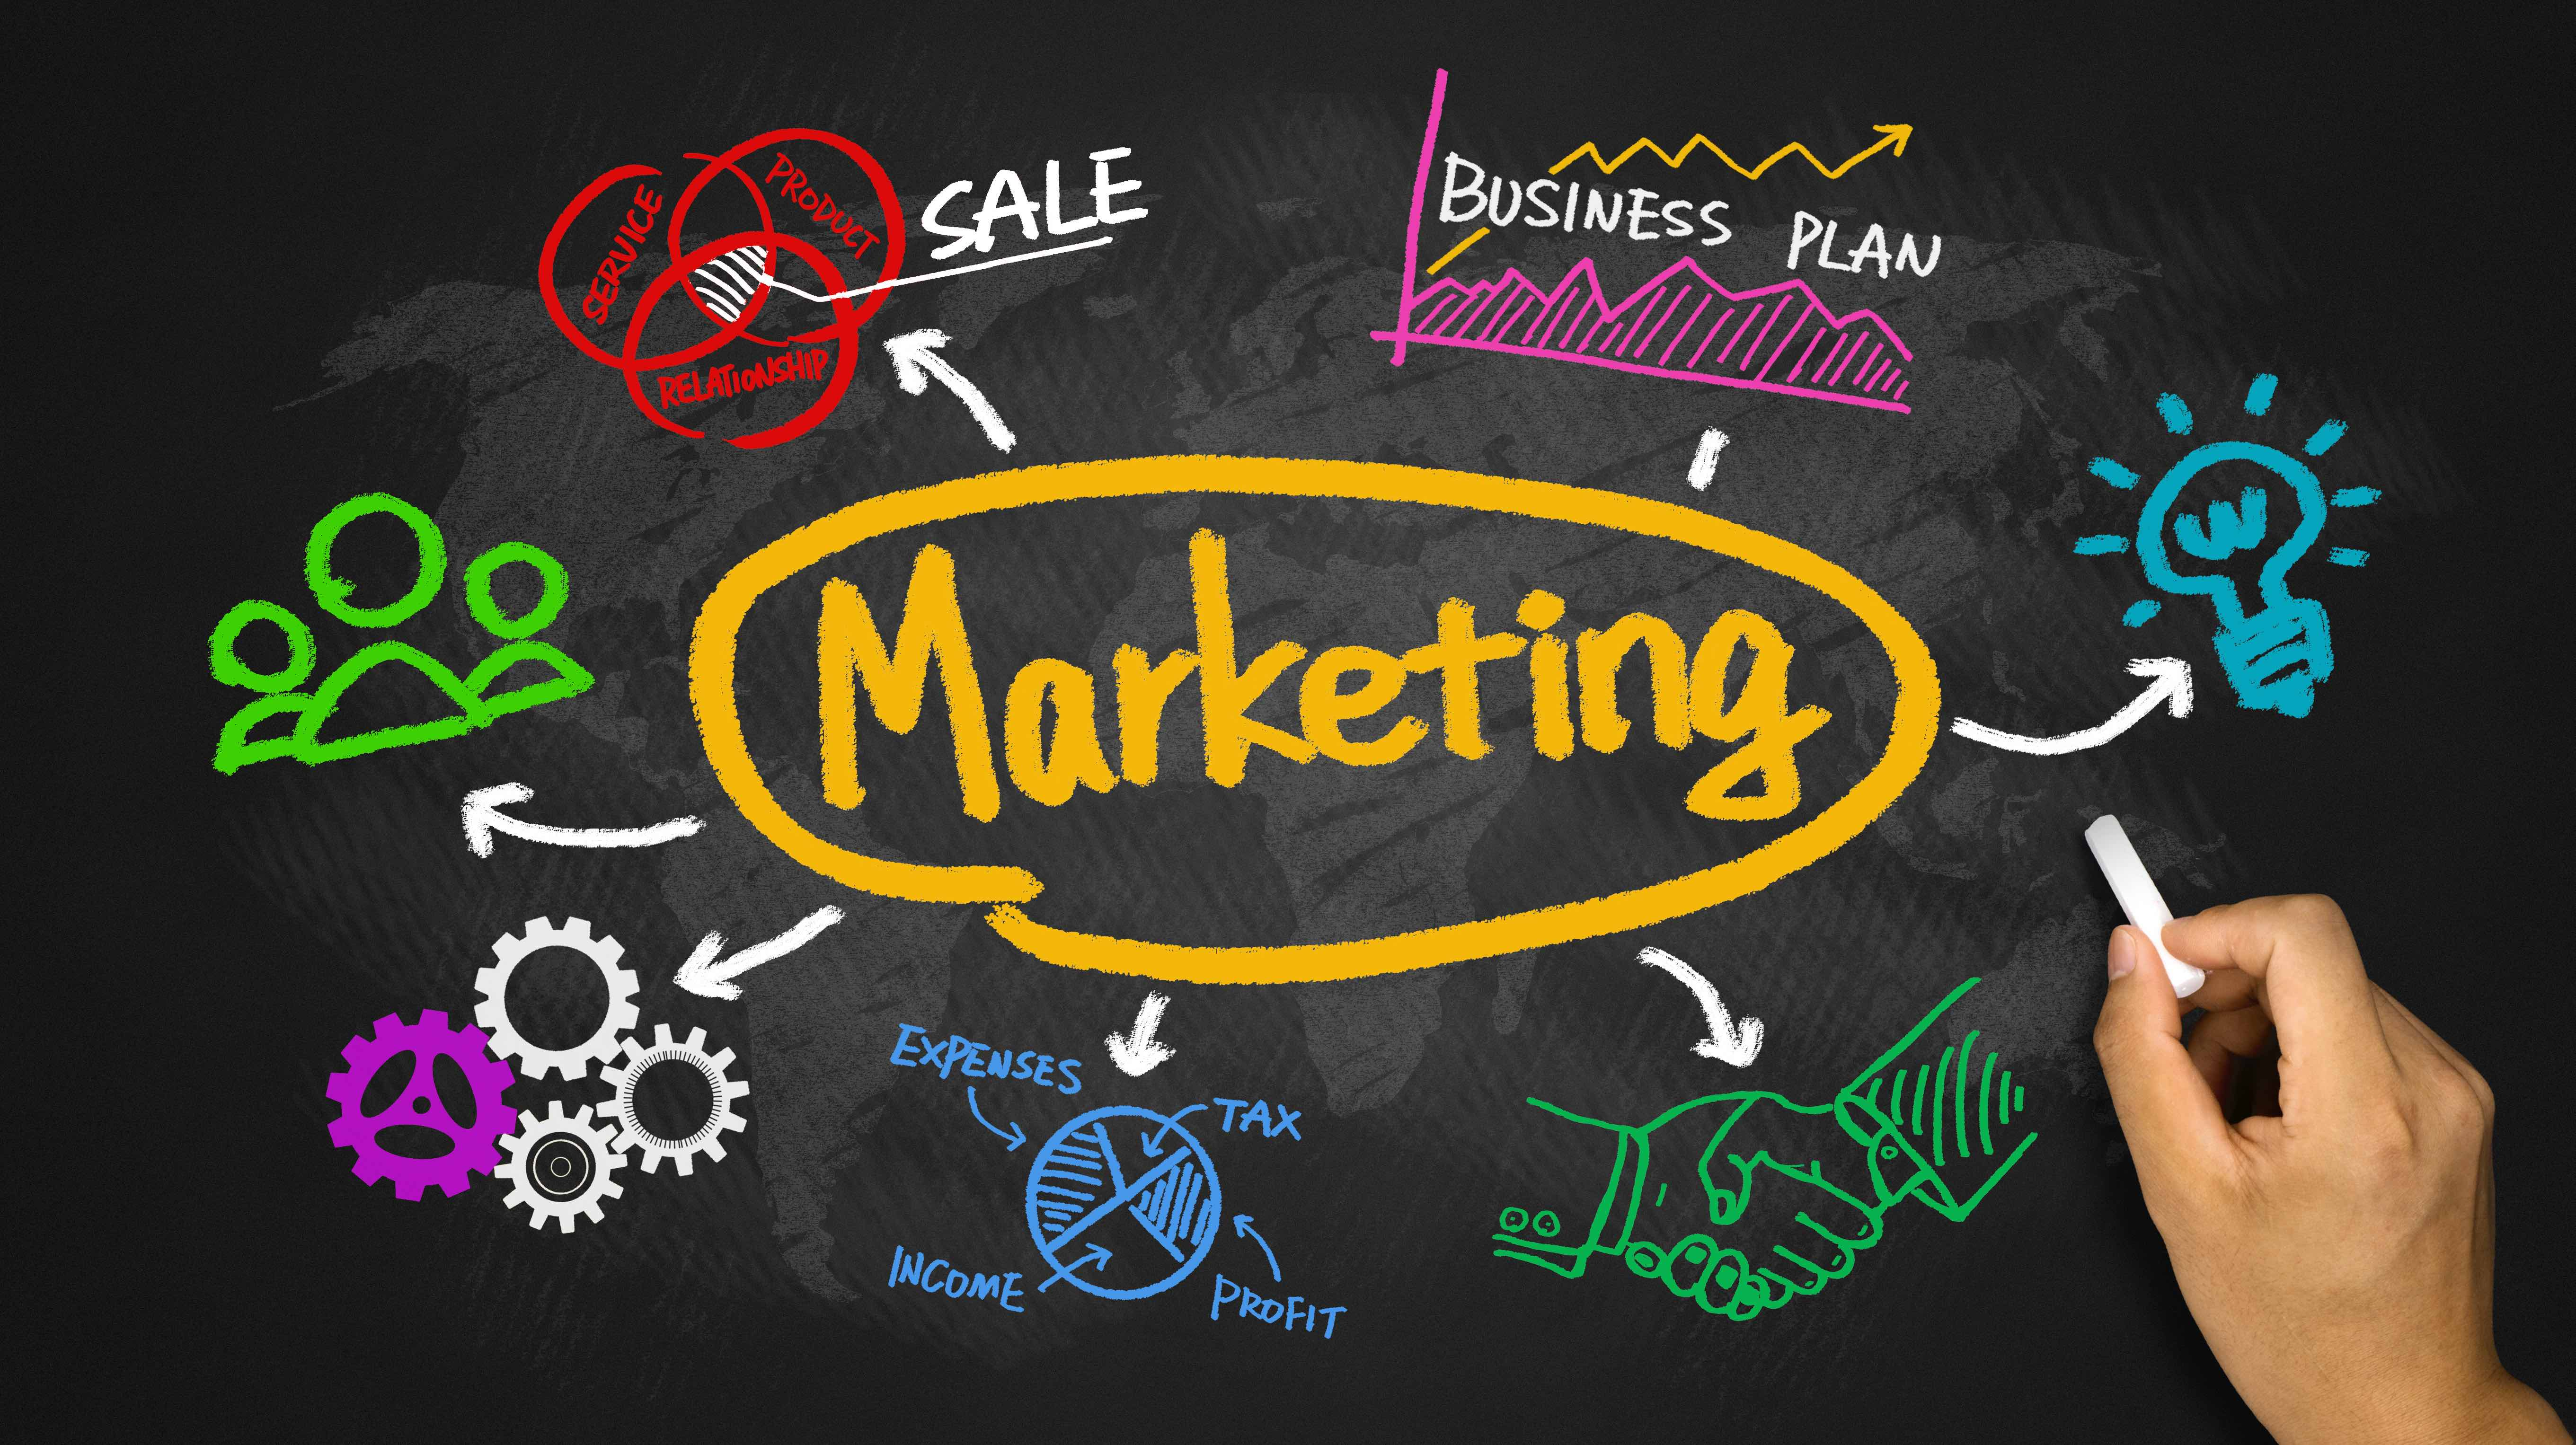 marketing  business graph and chart hand drawing on blackboard